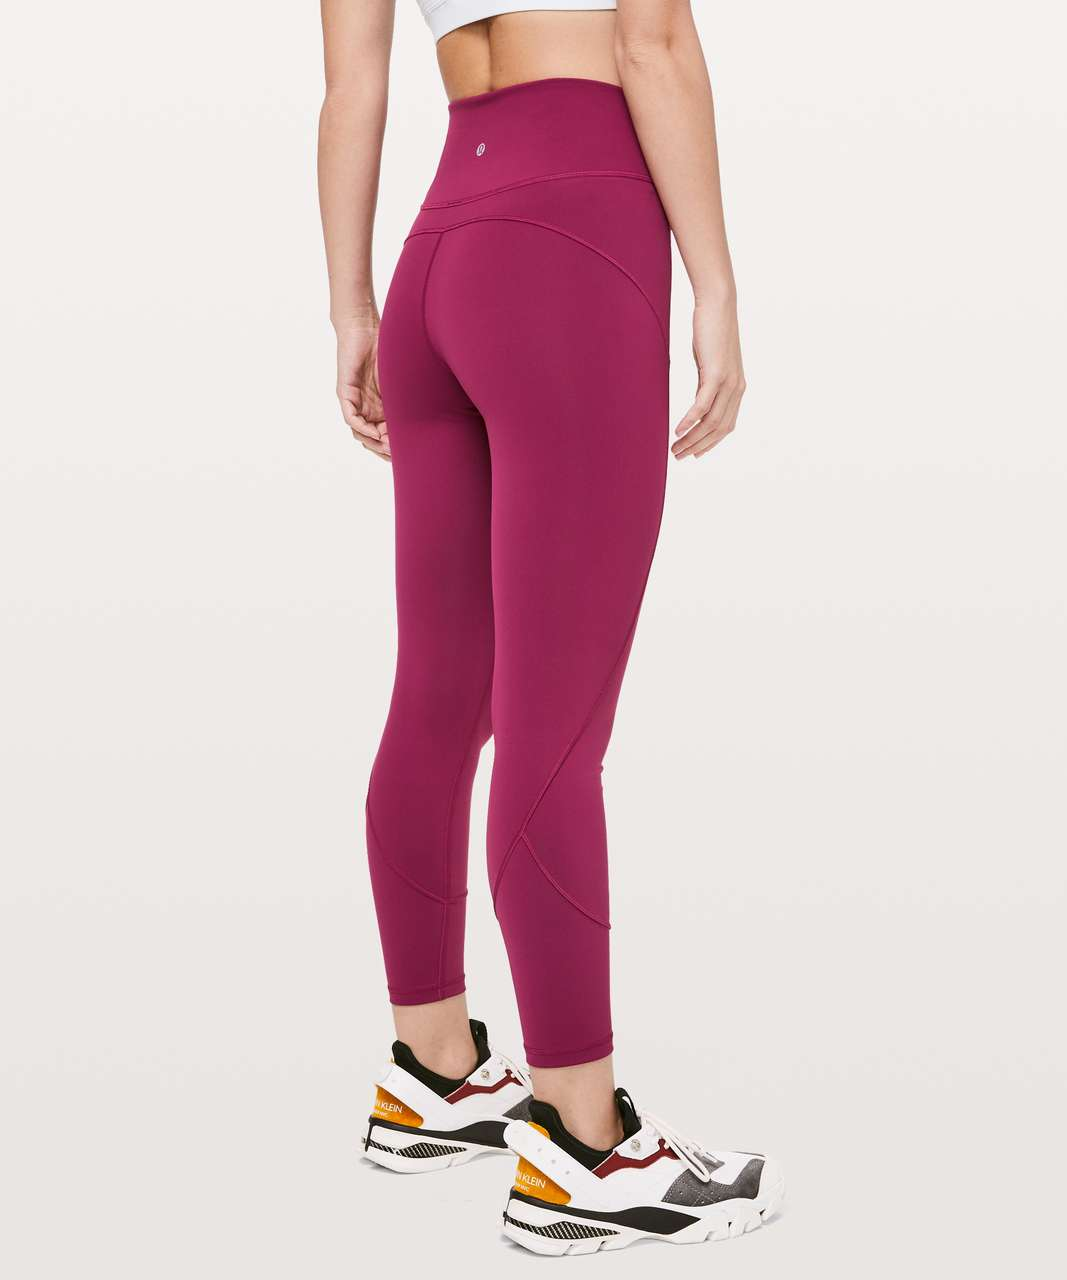 "Lululemon In Movement 7/8 Tight *Everlux 25"" - Star Ruby"